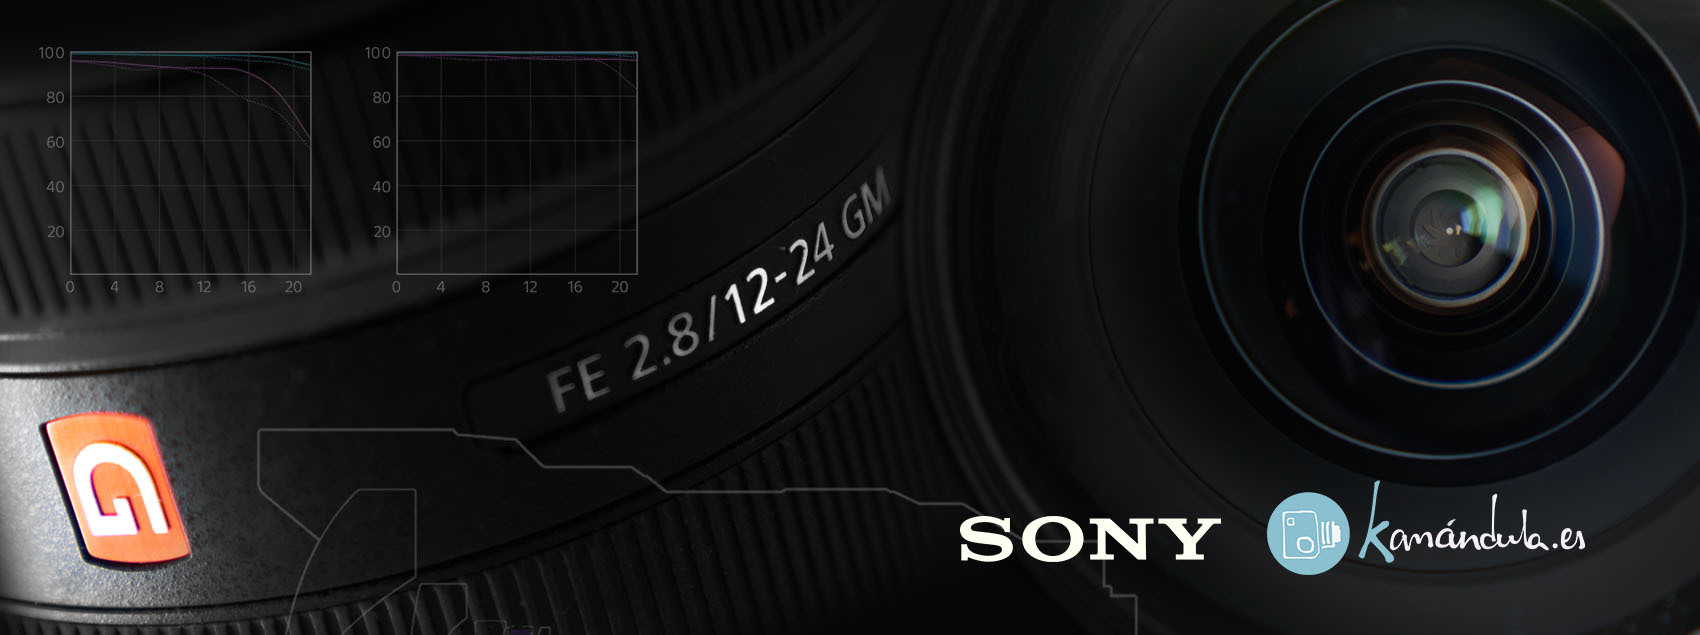 REVIEW SONY FE12-24 GM